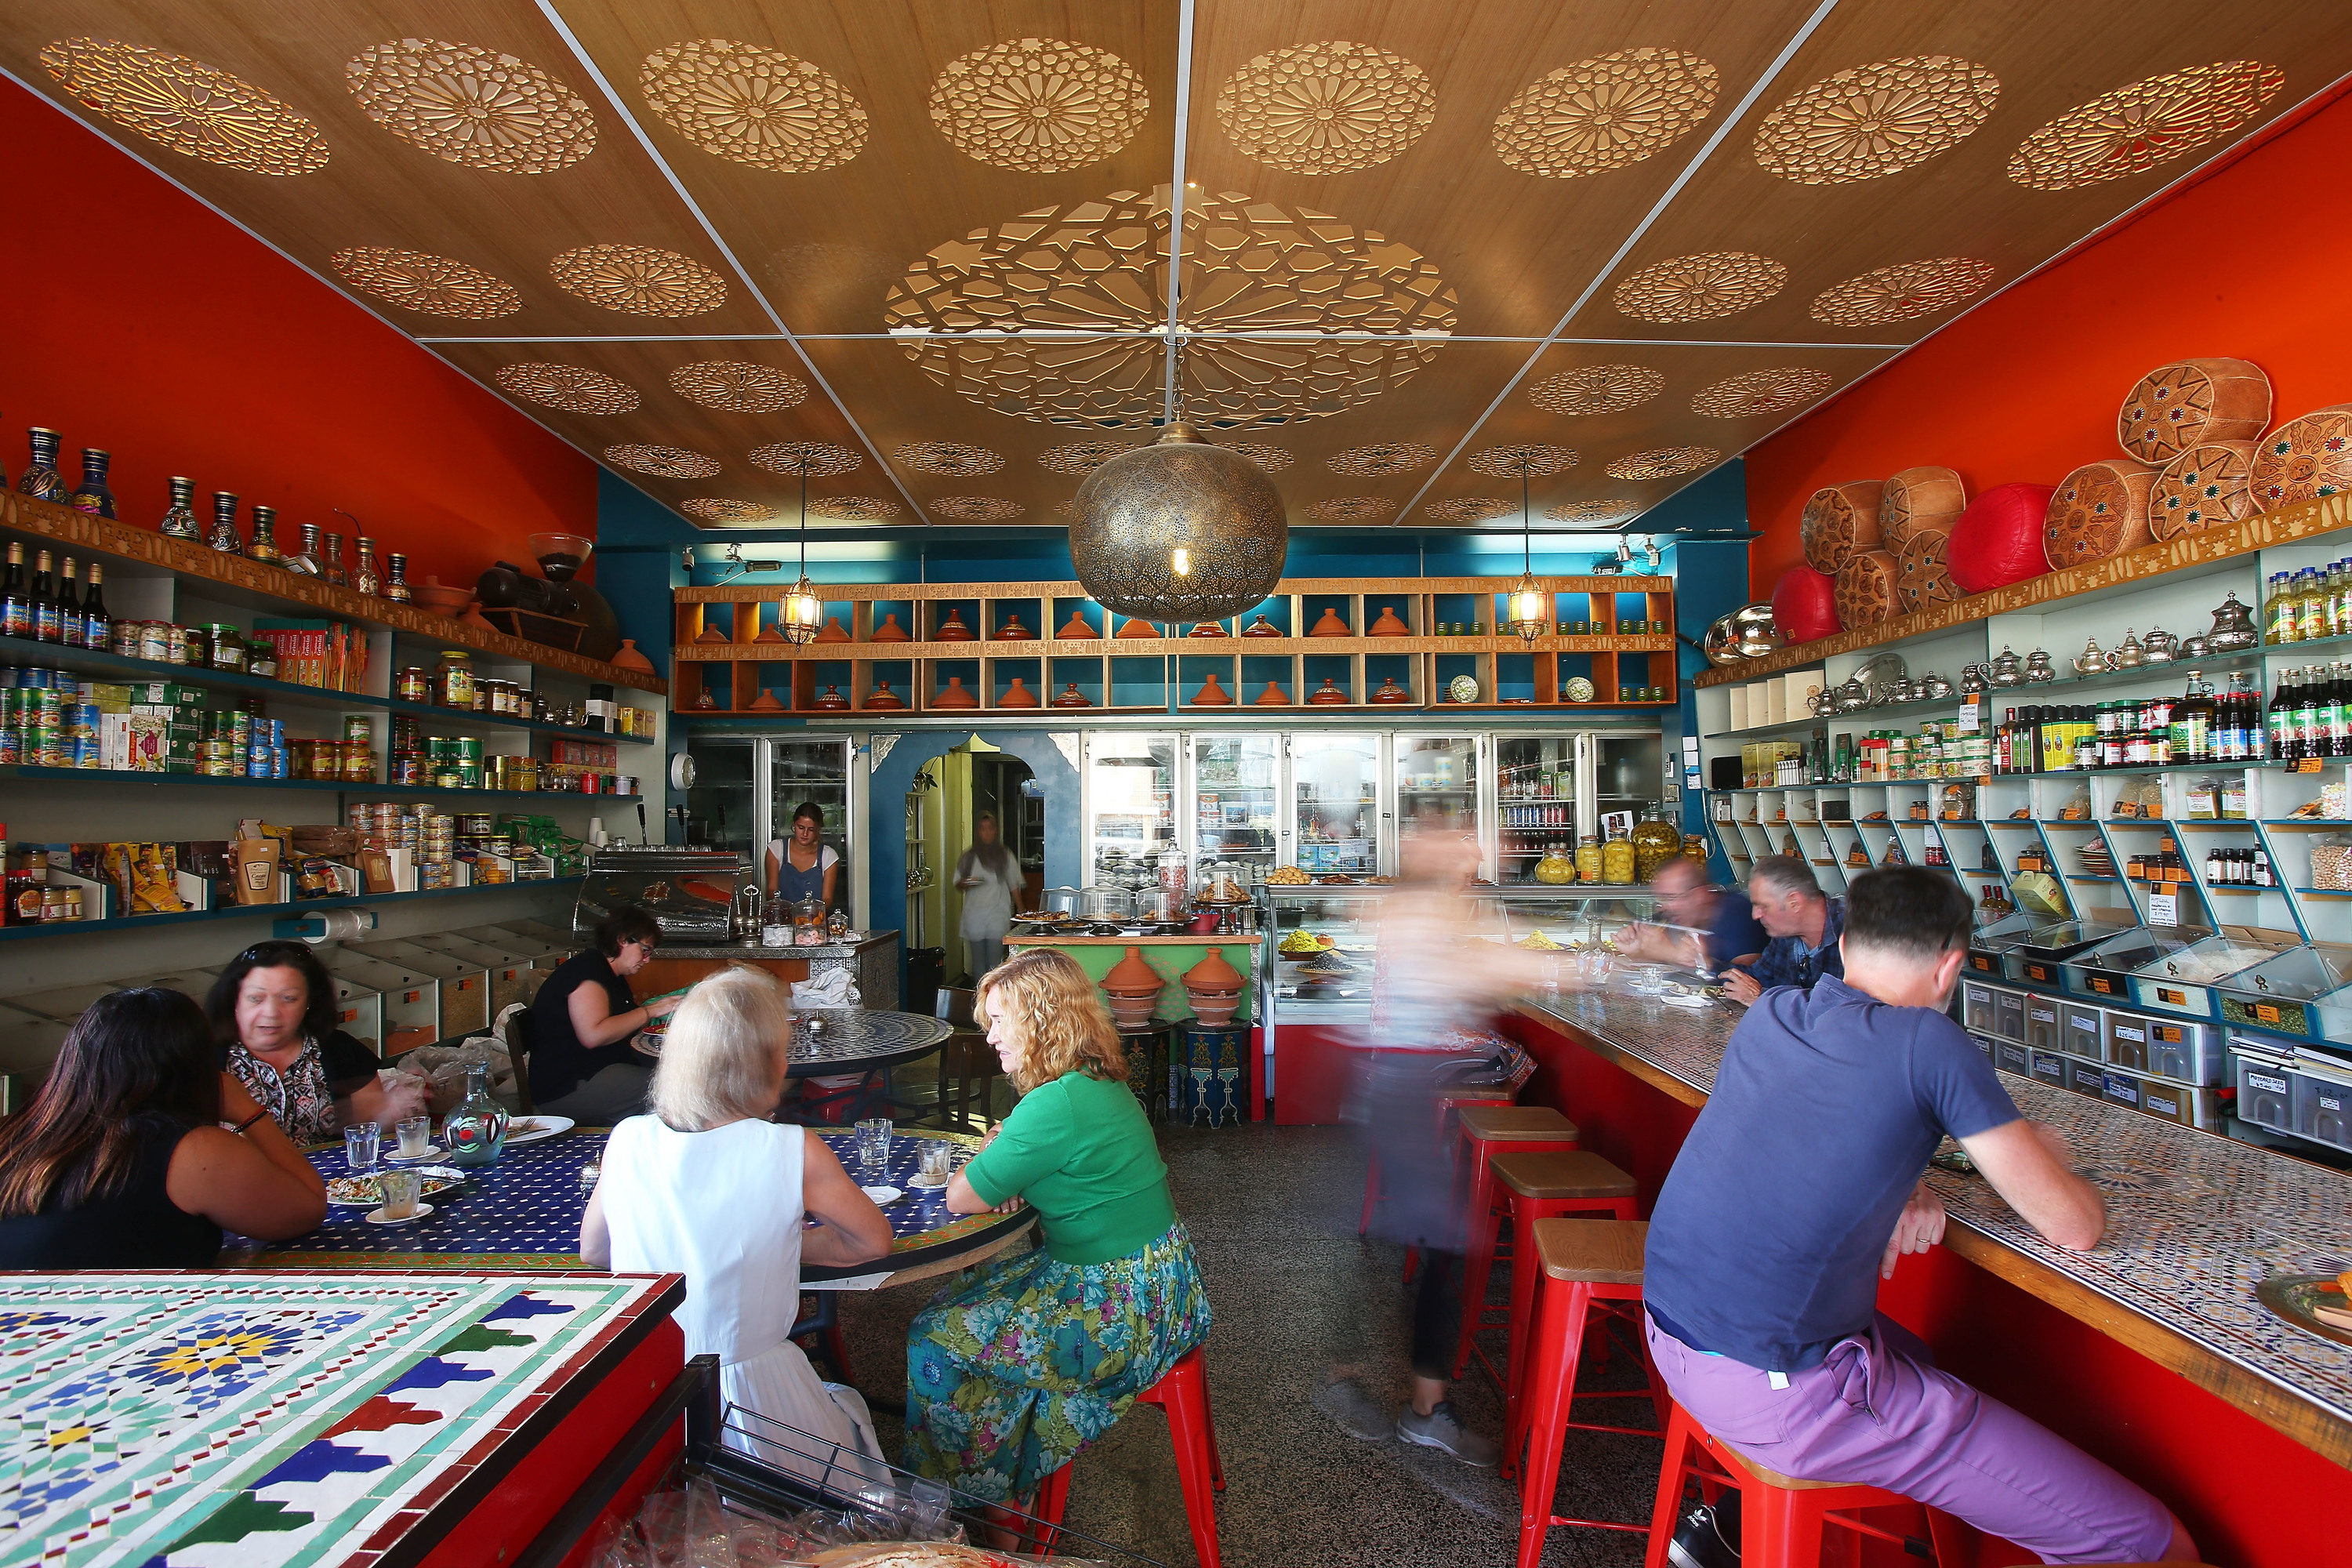 Moroccan Deli-cacy is closing this weekend